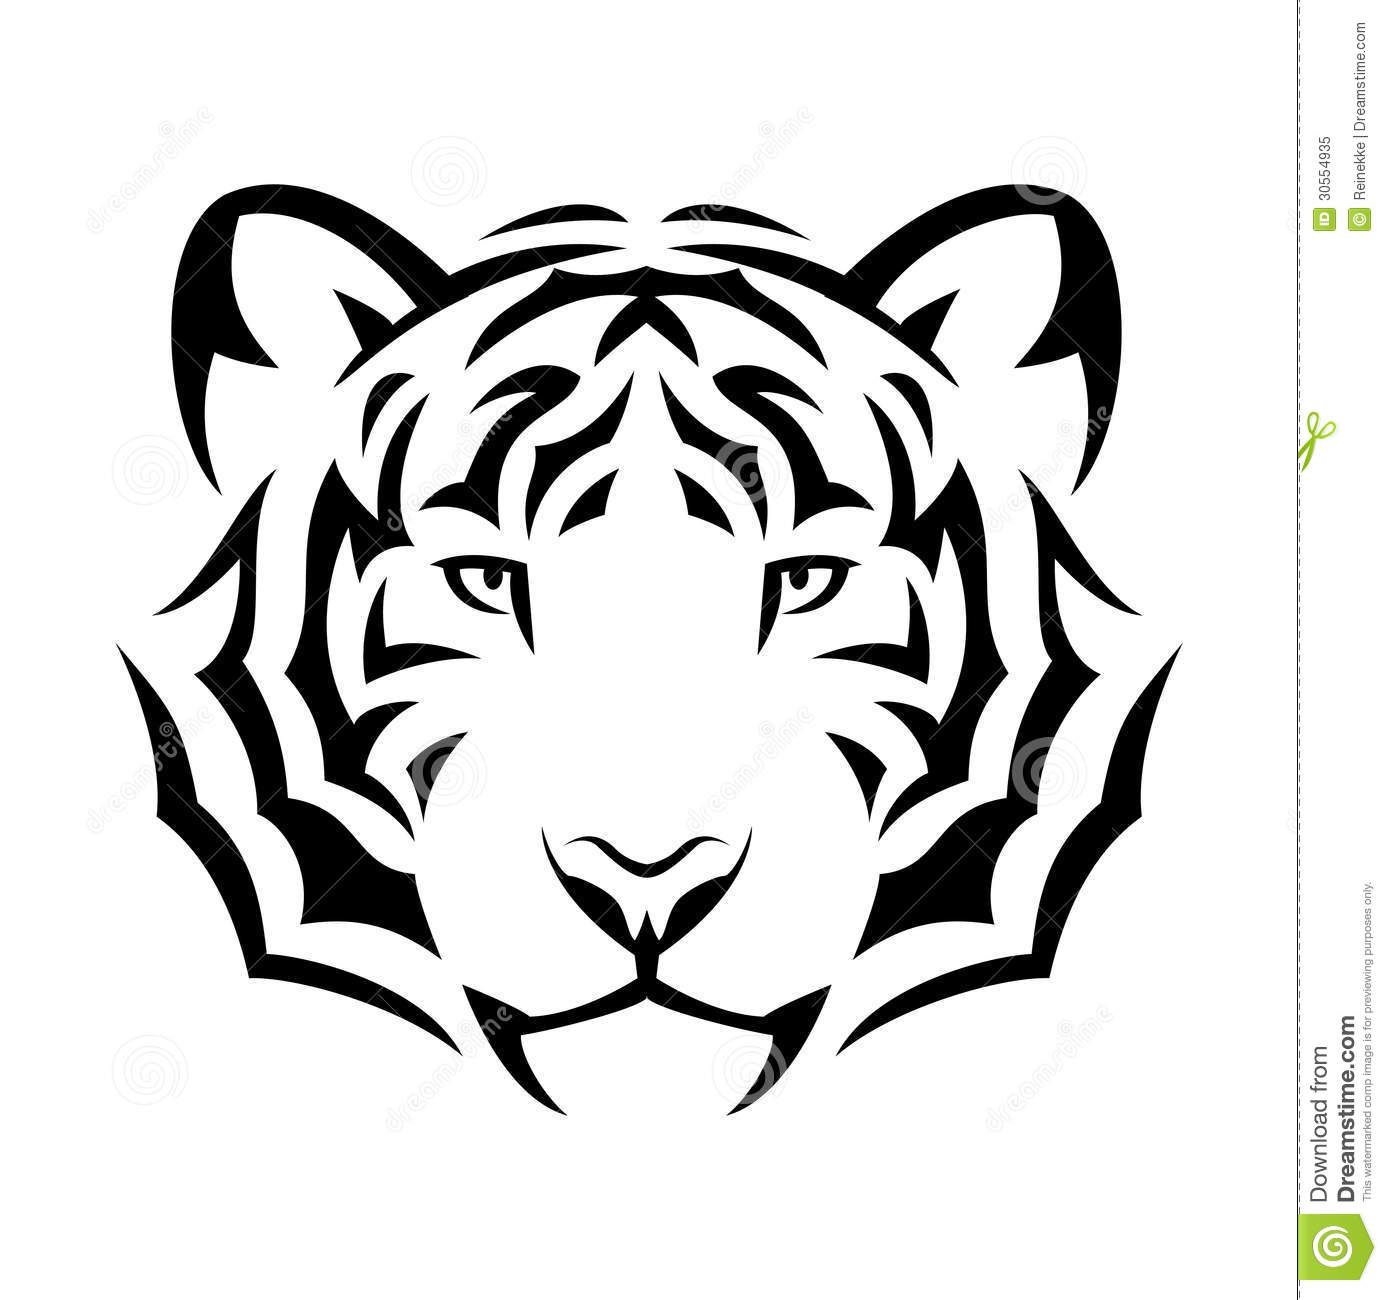 tiger tattoo stock vector illustration of tattoo cruel 30554935. Black Bedroom Furniture Sets. Home Design Ideas